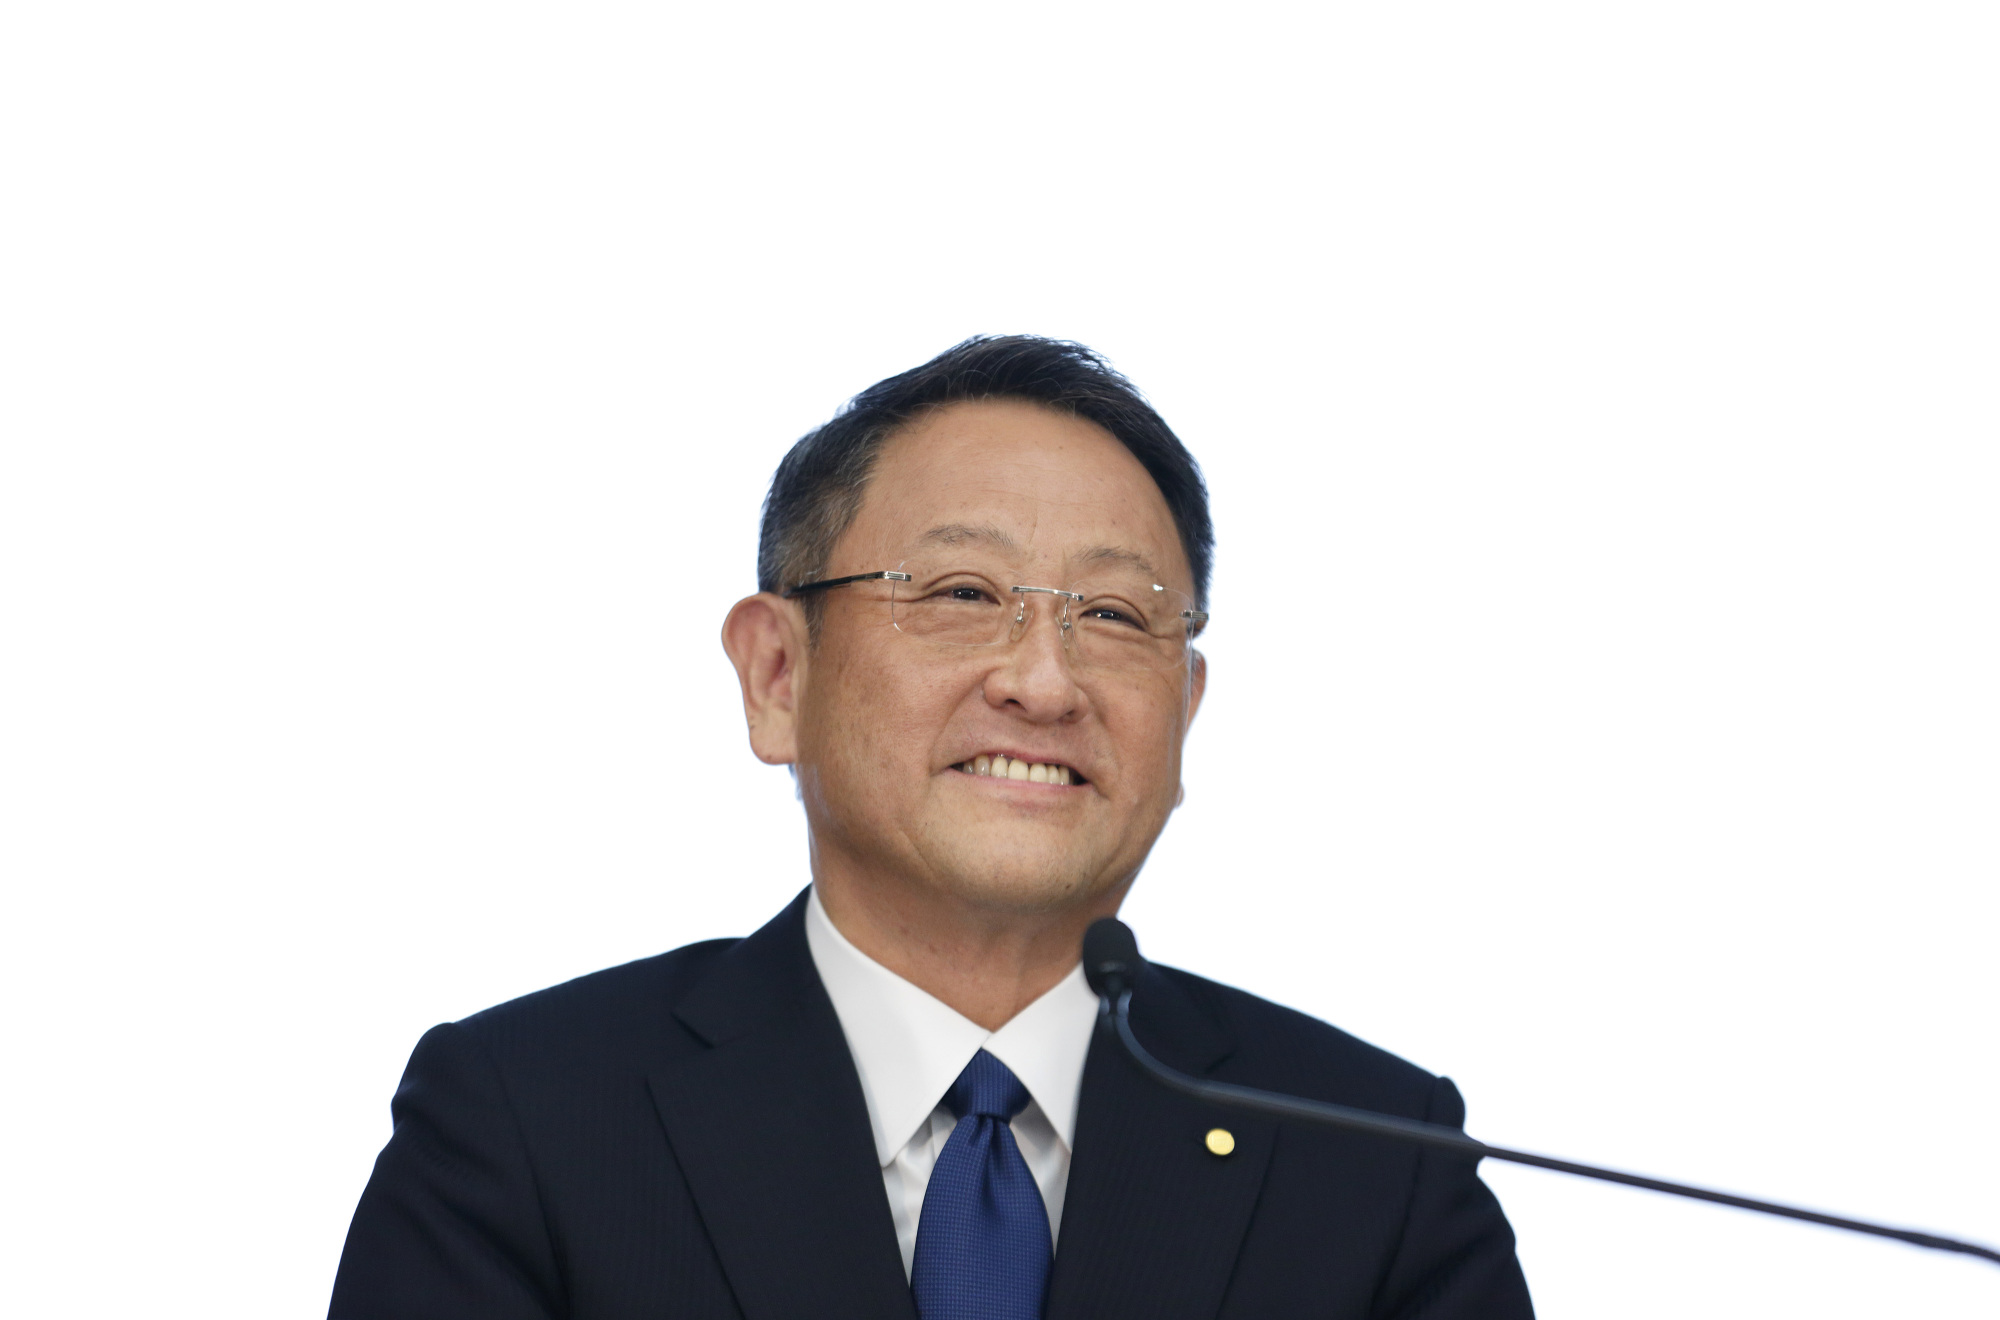 Toyota chief Akio Toyoda has opened an account on Weibo seeking to make friends in China. | BLOOMBERG